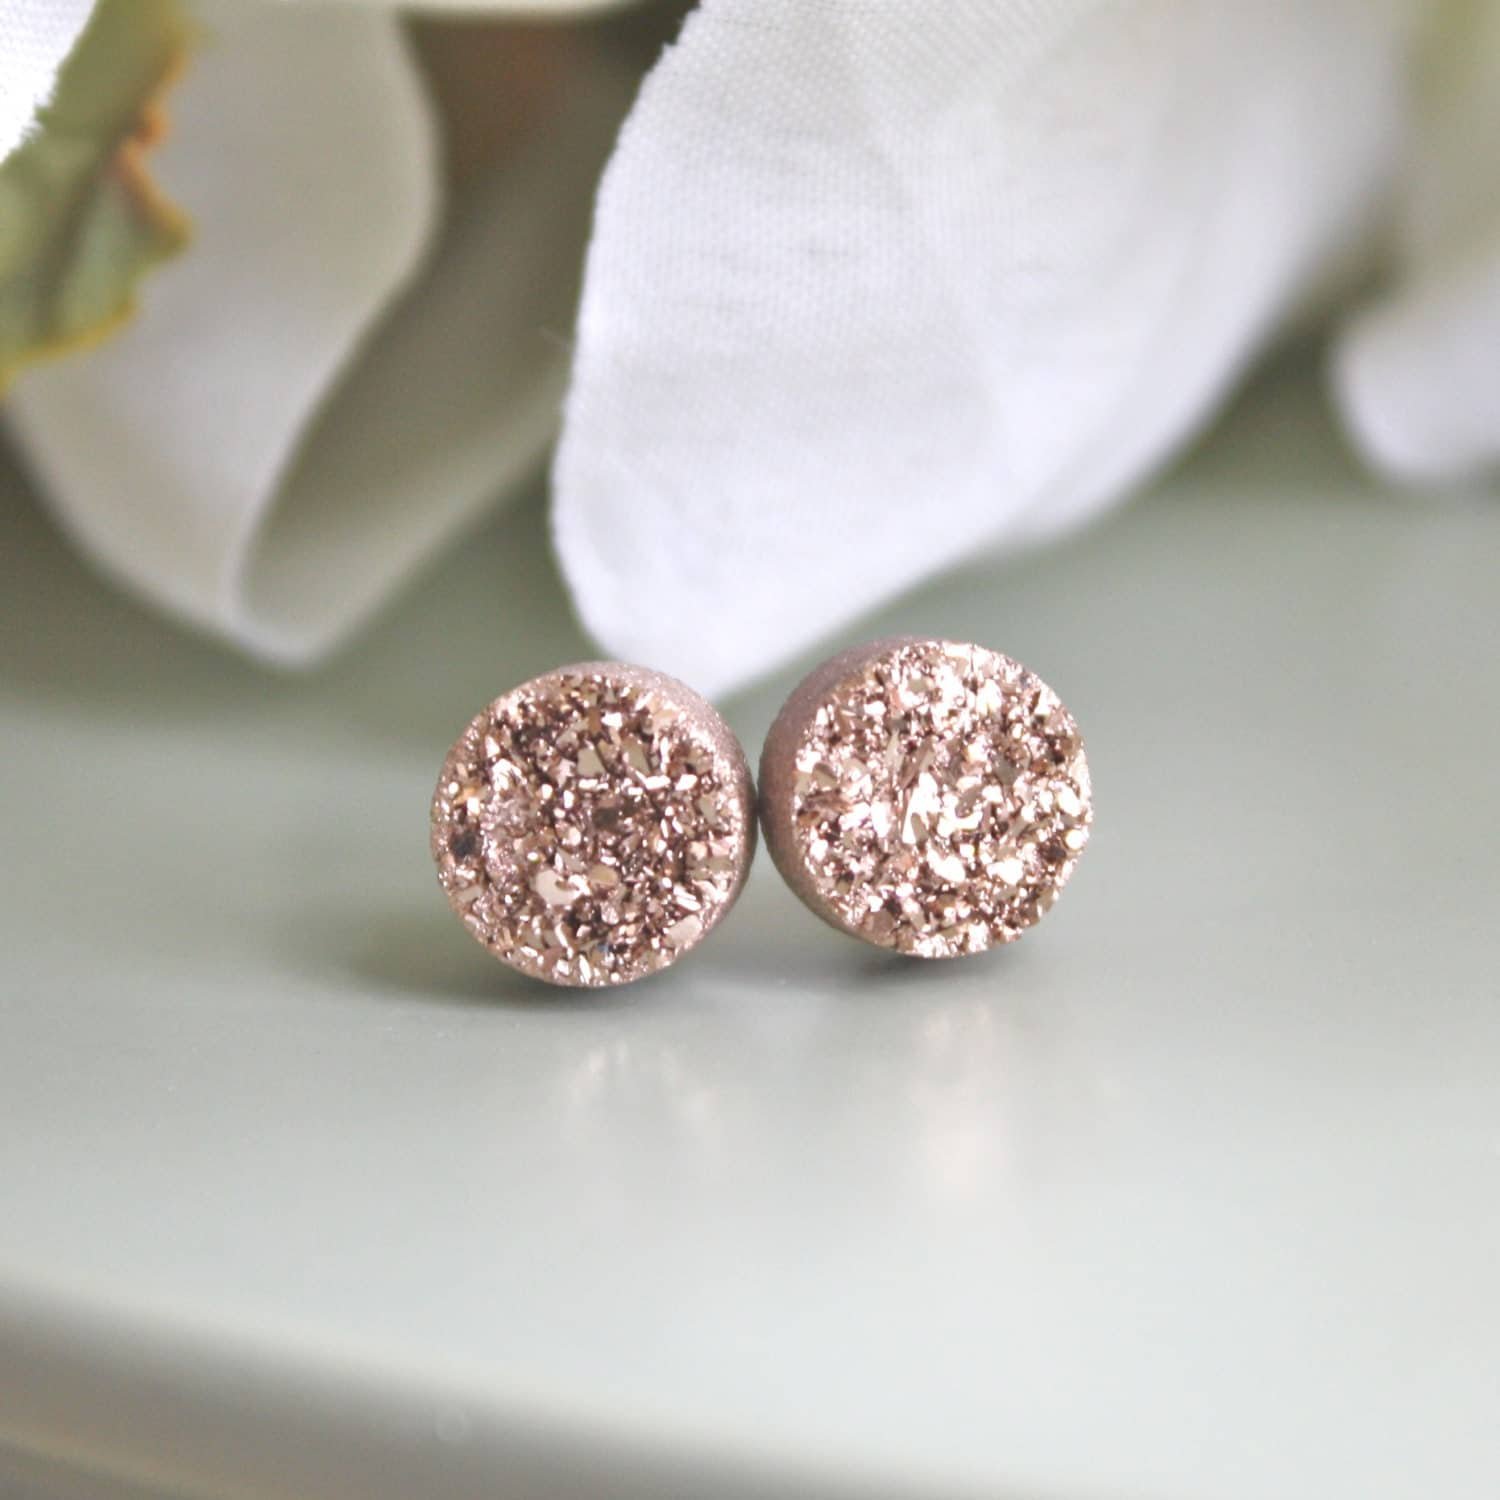 Rose Gold Druzy Earrings gifts for her Bridesmaid Earrings Rose gold earrings stud earring Mothers Day gift, Best friend best selling items